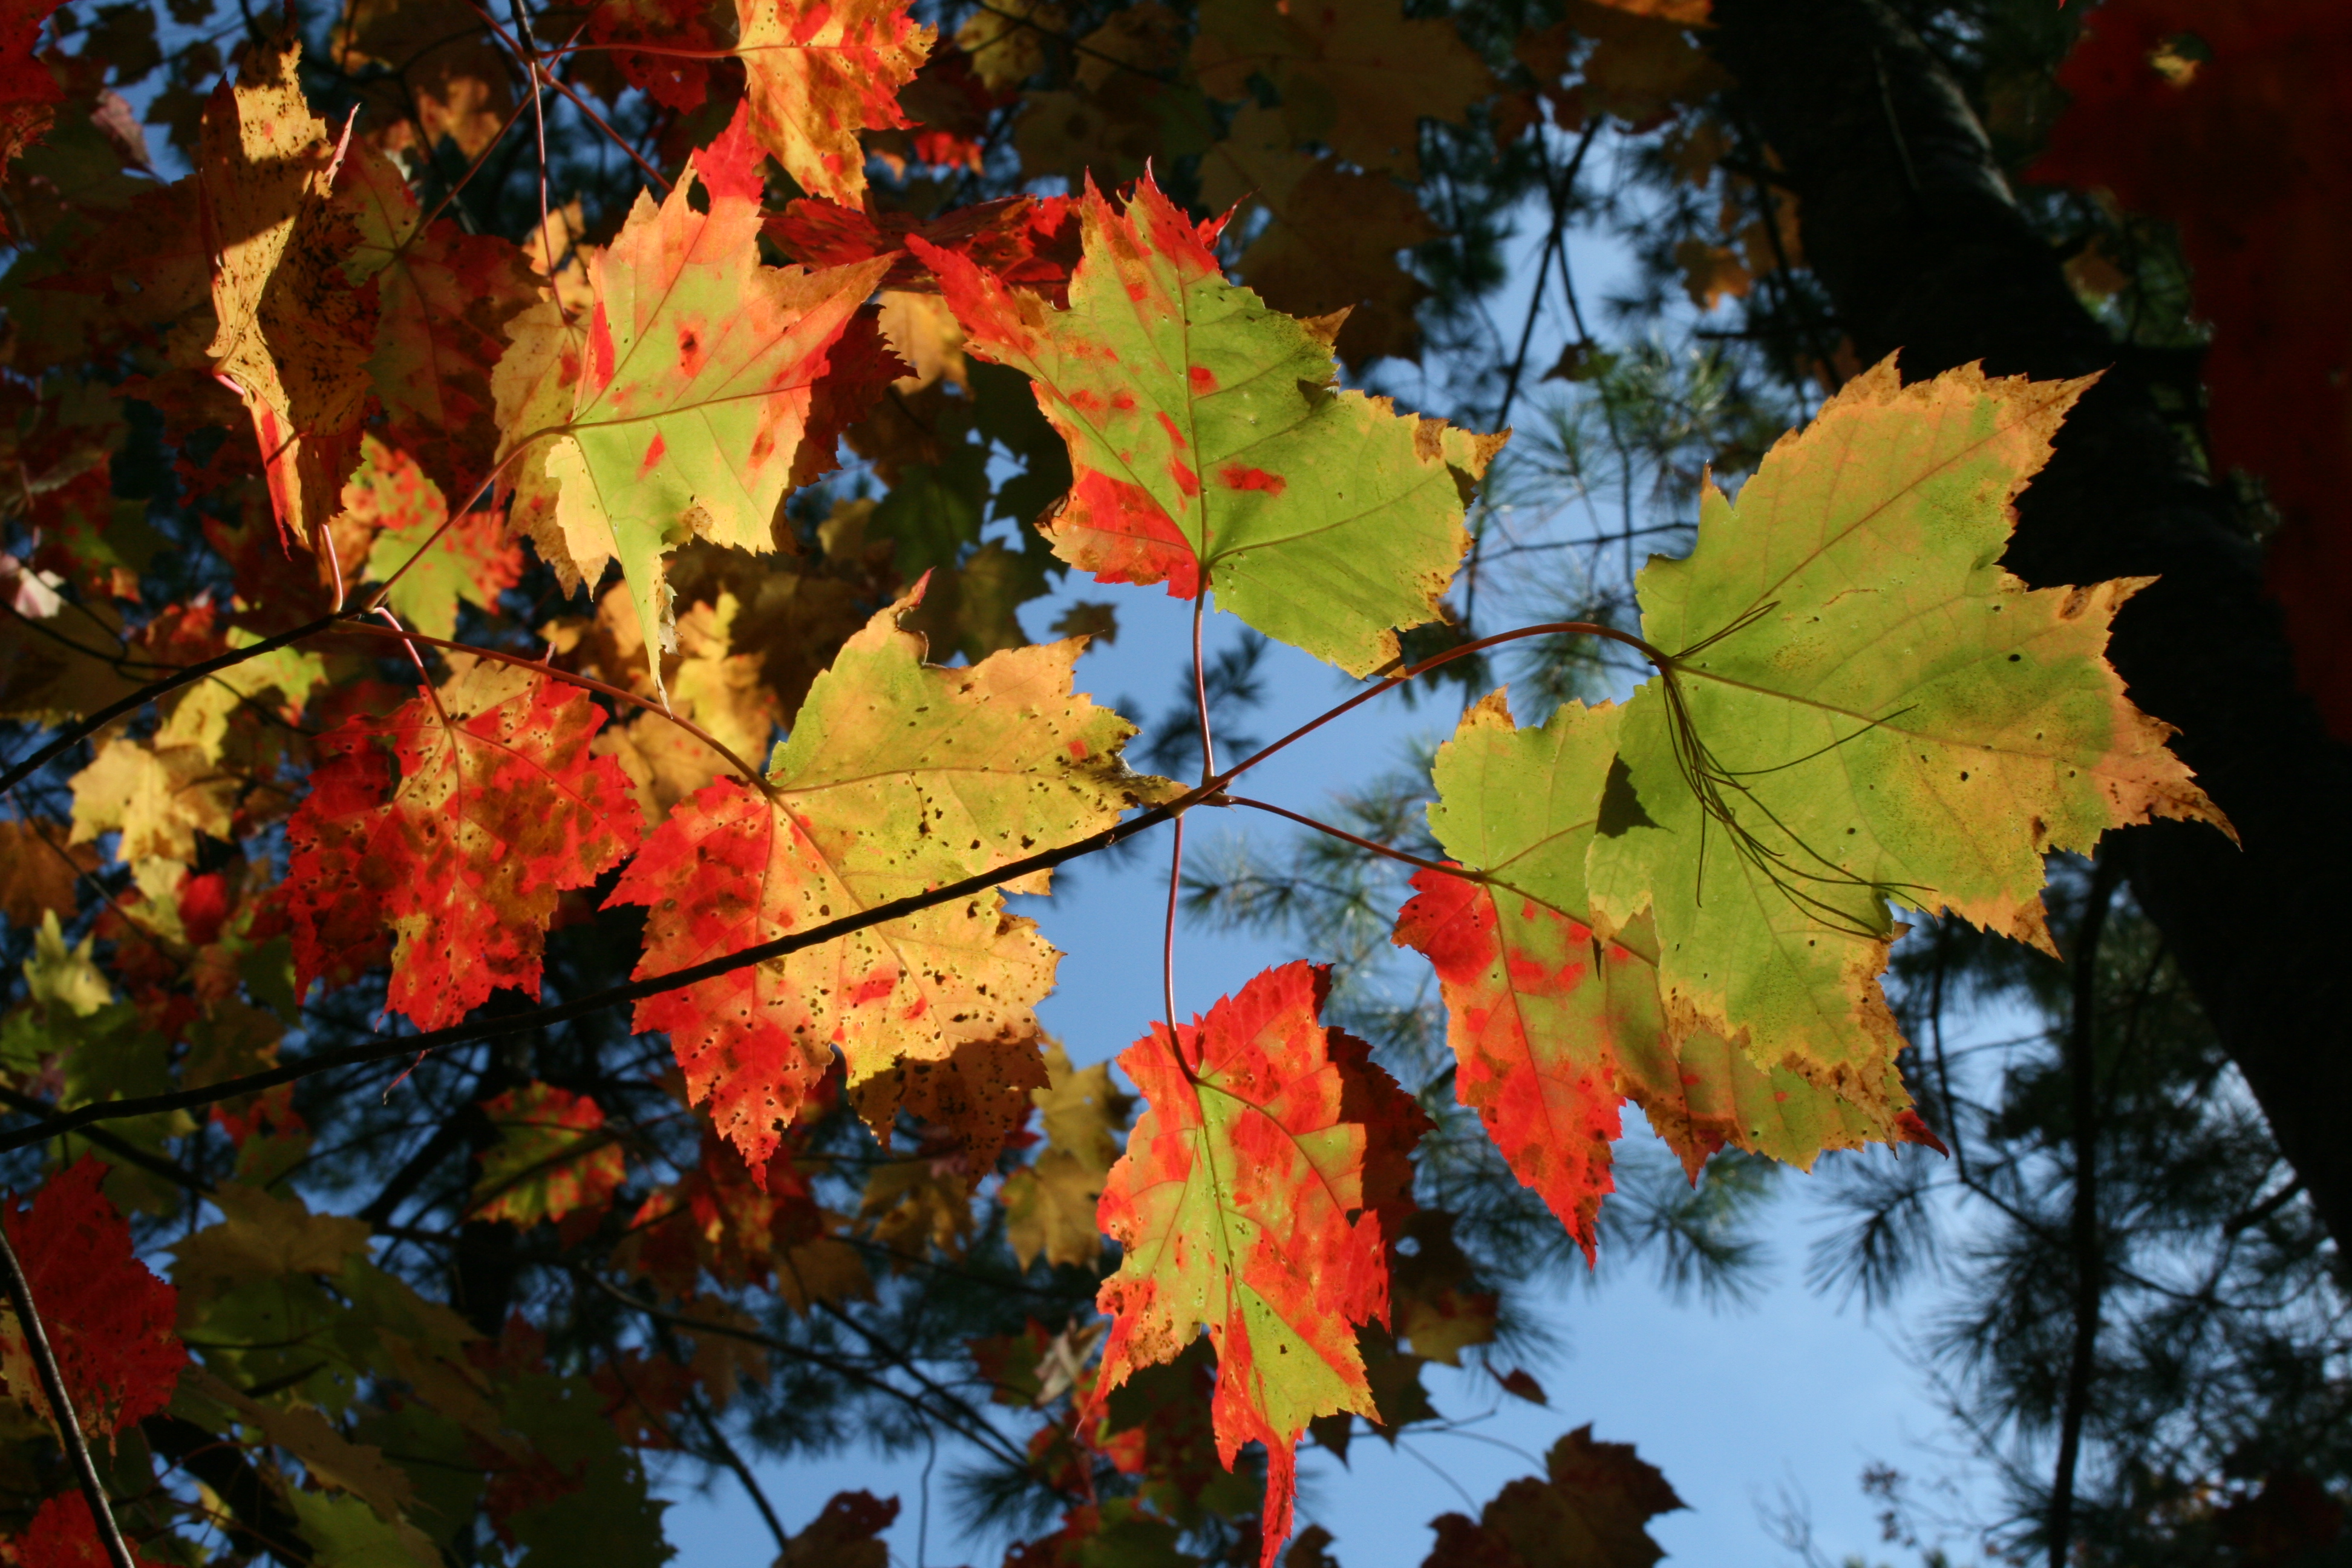 Glowing Leaves at Interlochen